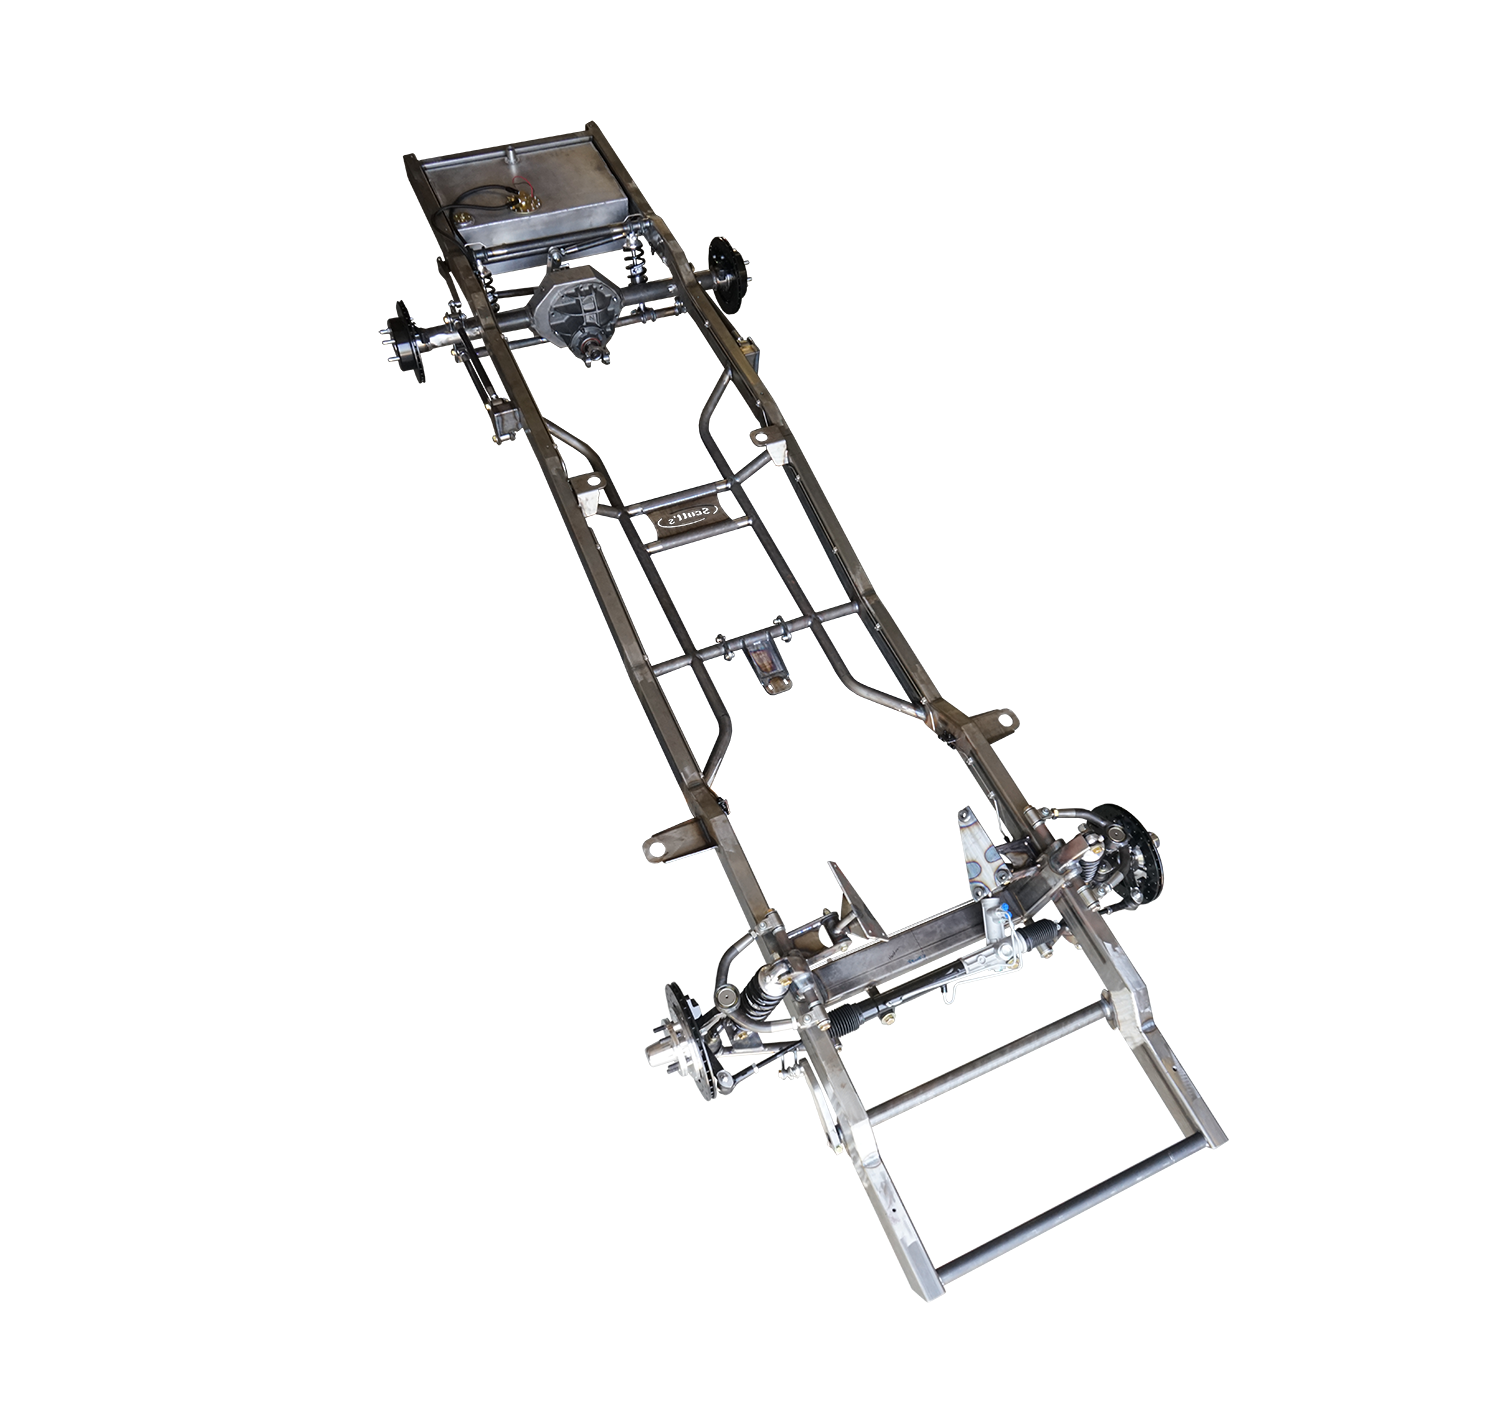 scotts-65-F100-coilover-chassis-cut-out-1-web